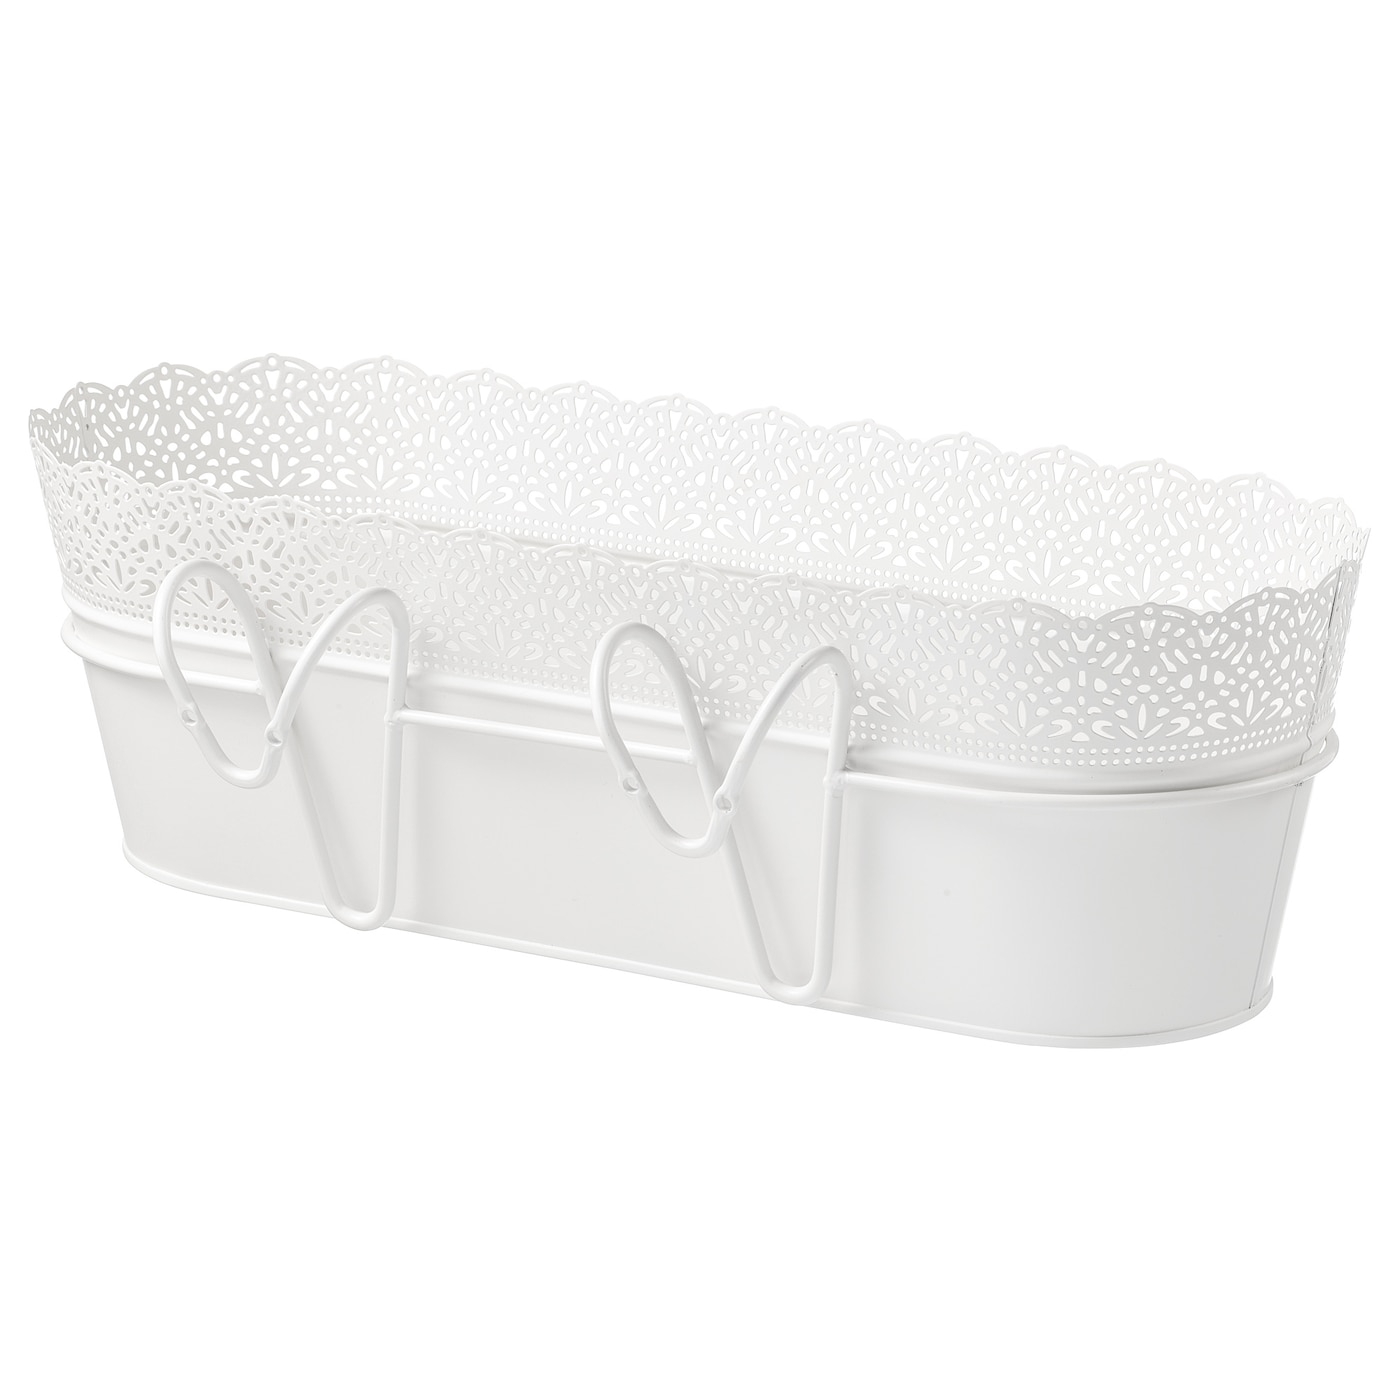 IKEA SKURAR flower box with holder